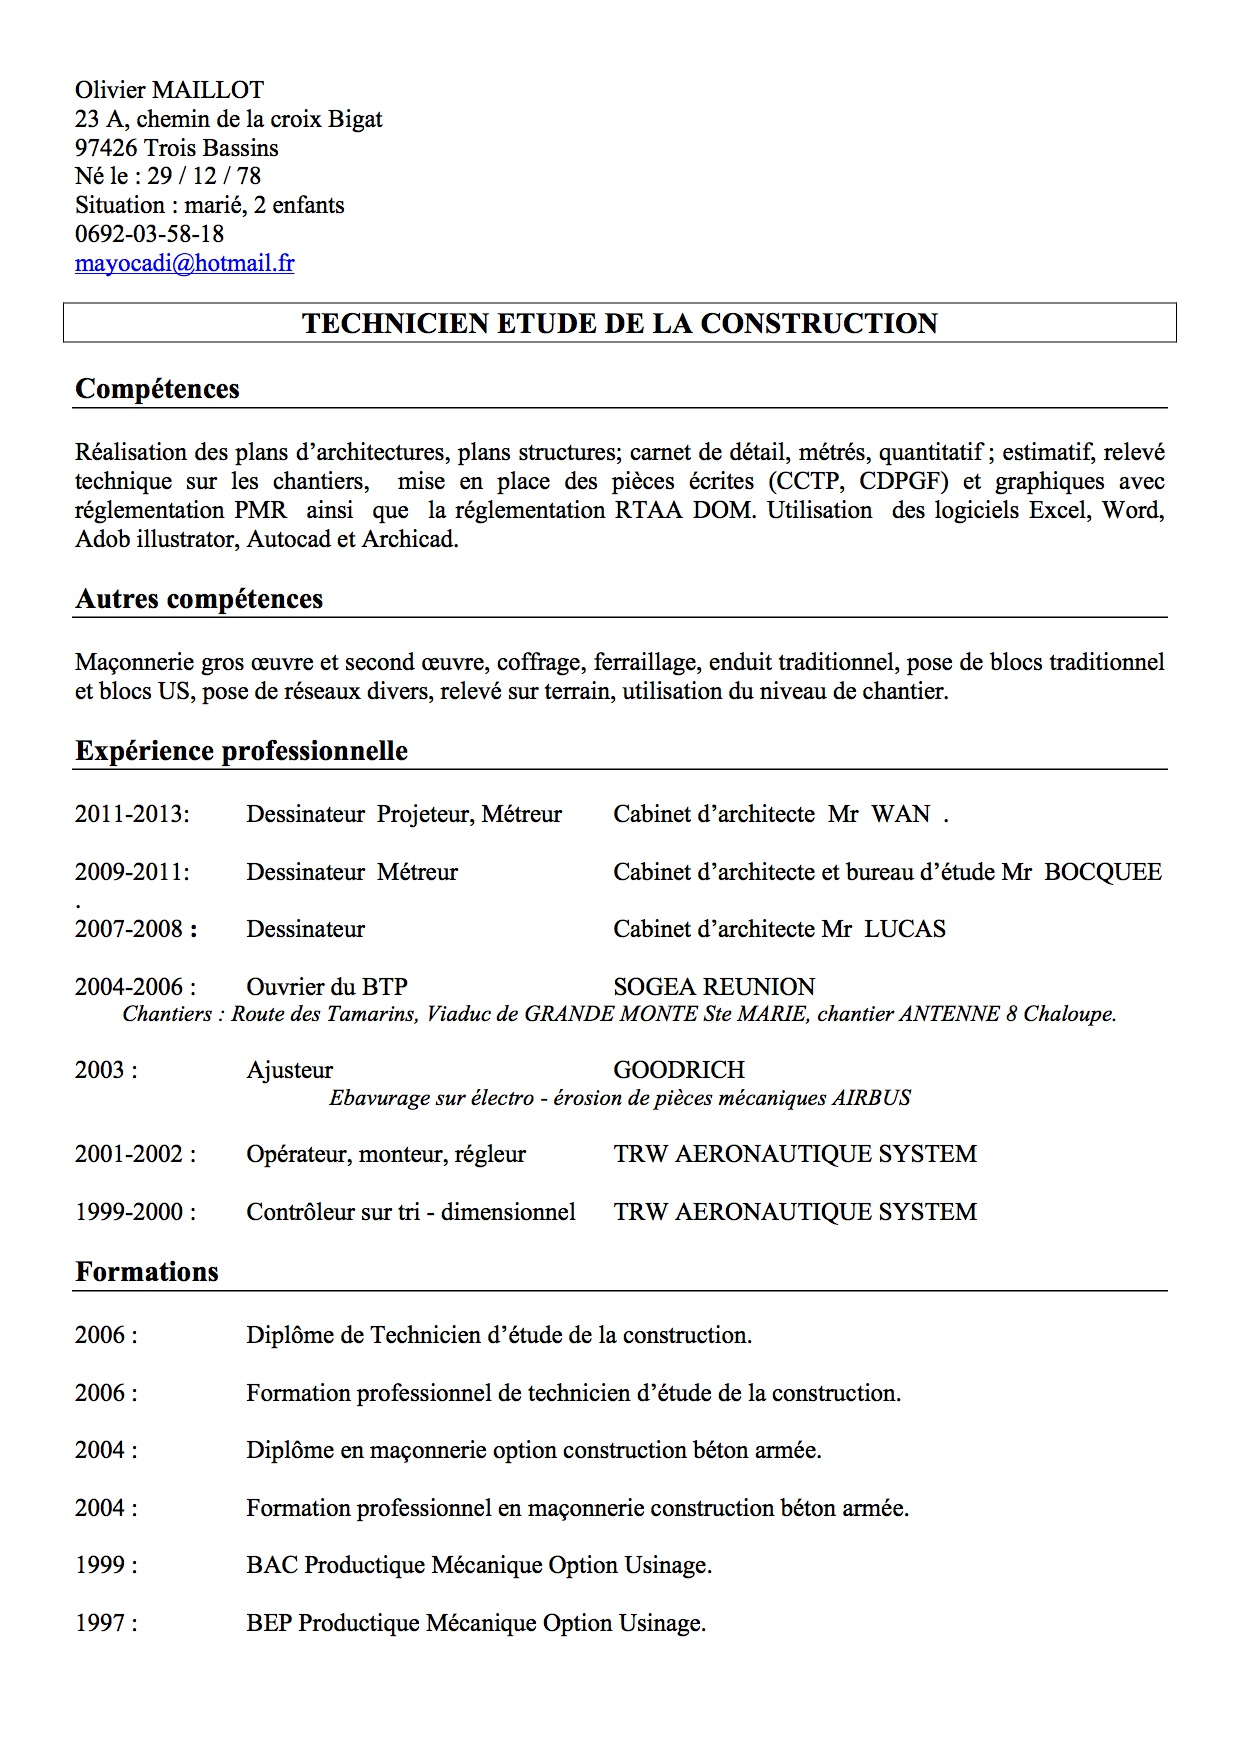 recherche un poste de technicien  u00e9tude de la construction  u2013 archi re    architectures  u00e0 la r u00e9union